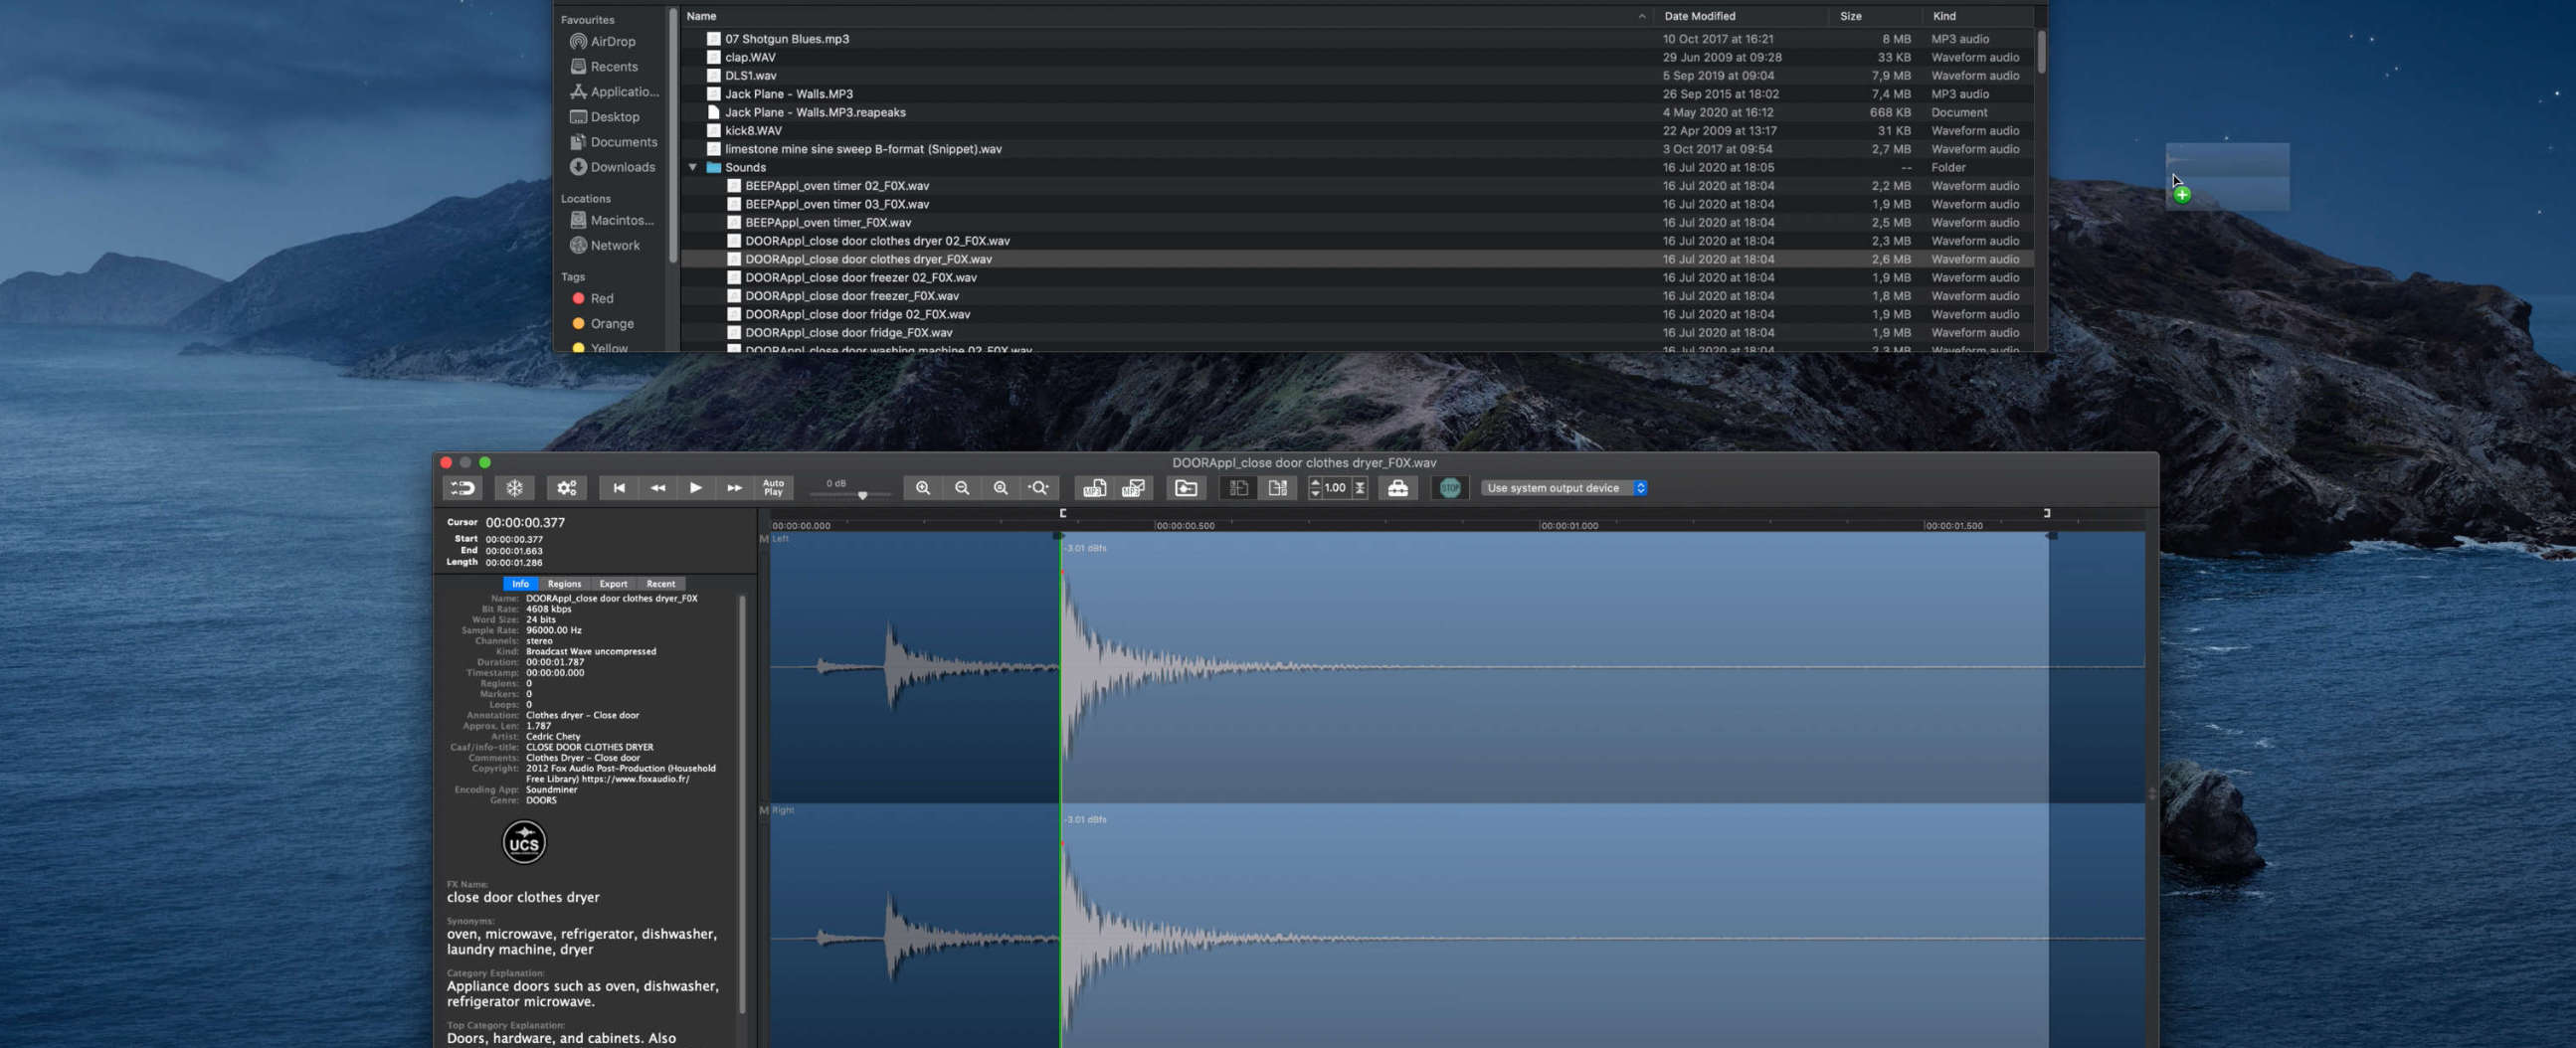 Snapper, view and edit audio file right in the mac finder